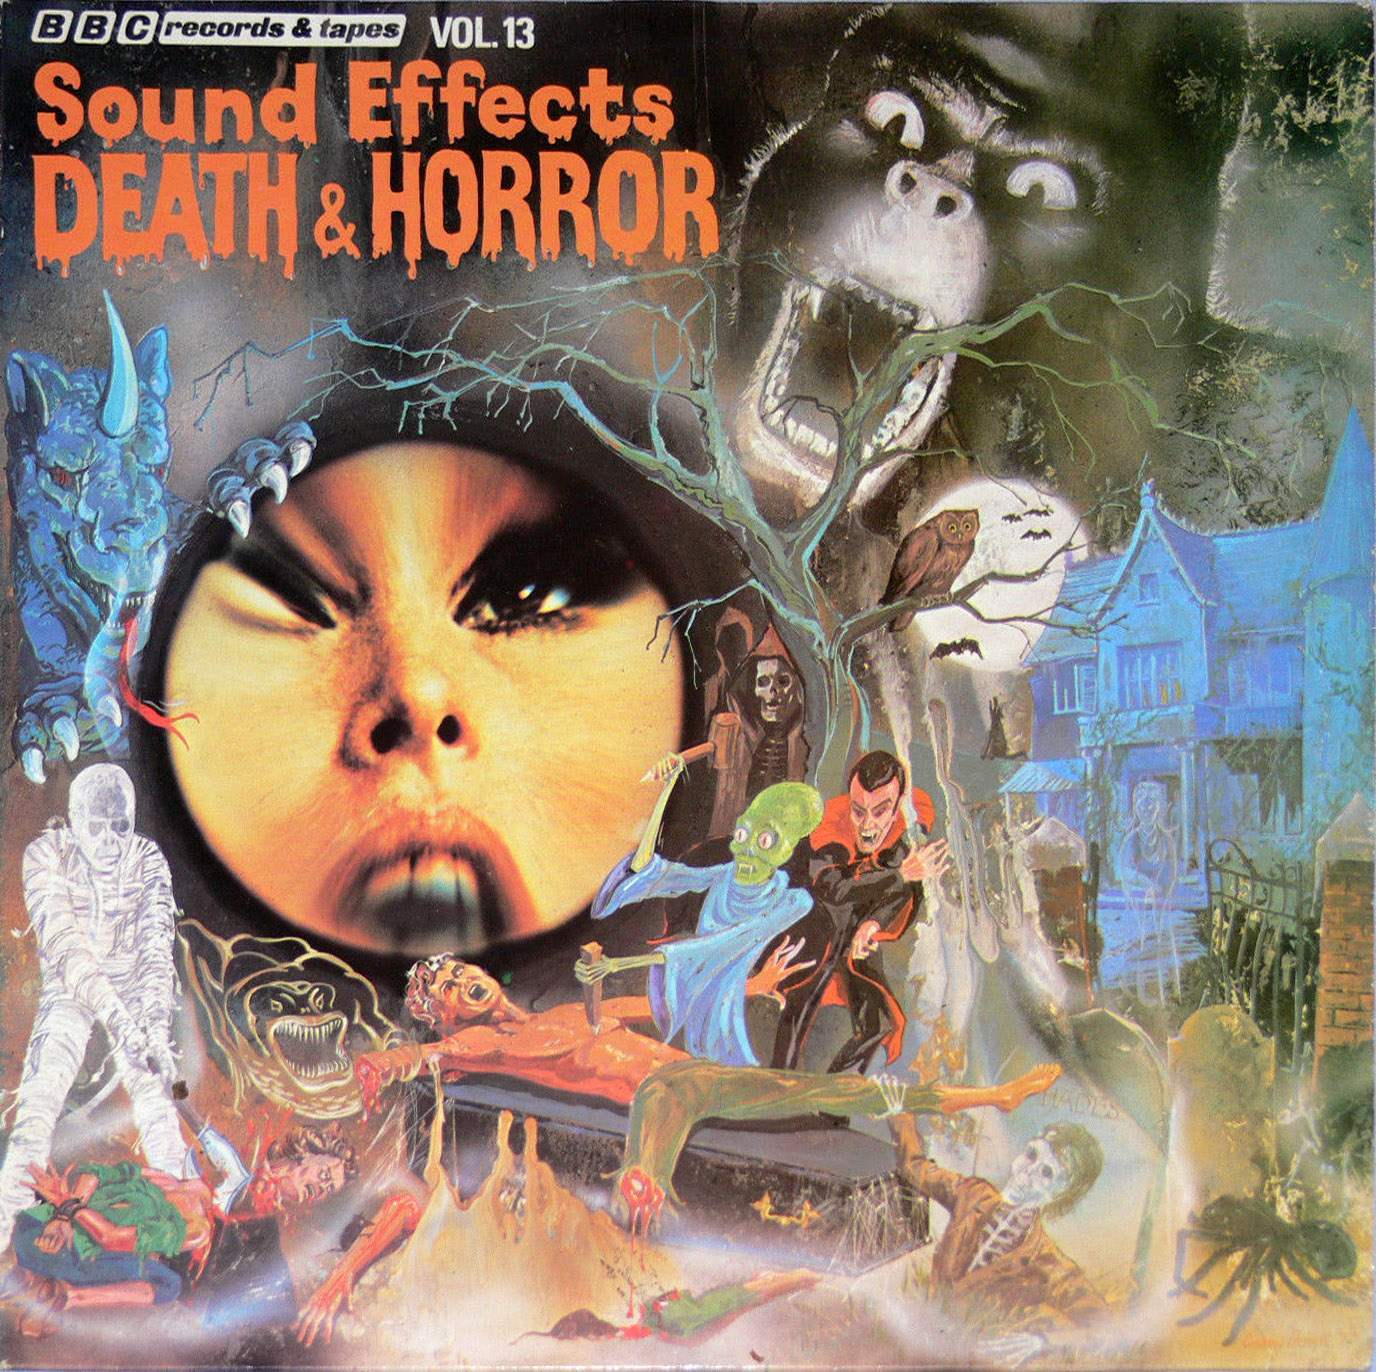 sounds to make you shiver! horror novelty records of the 1950s-80s